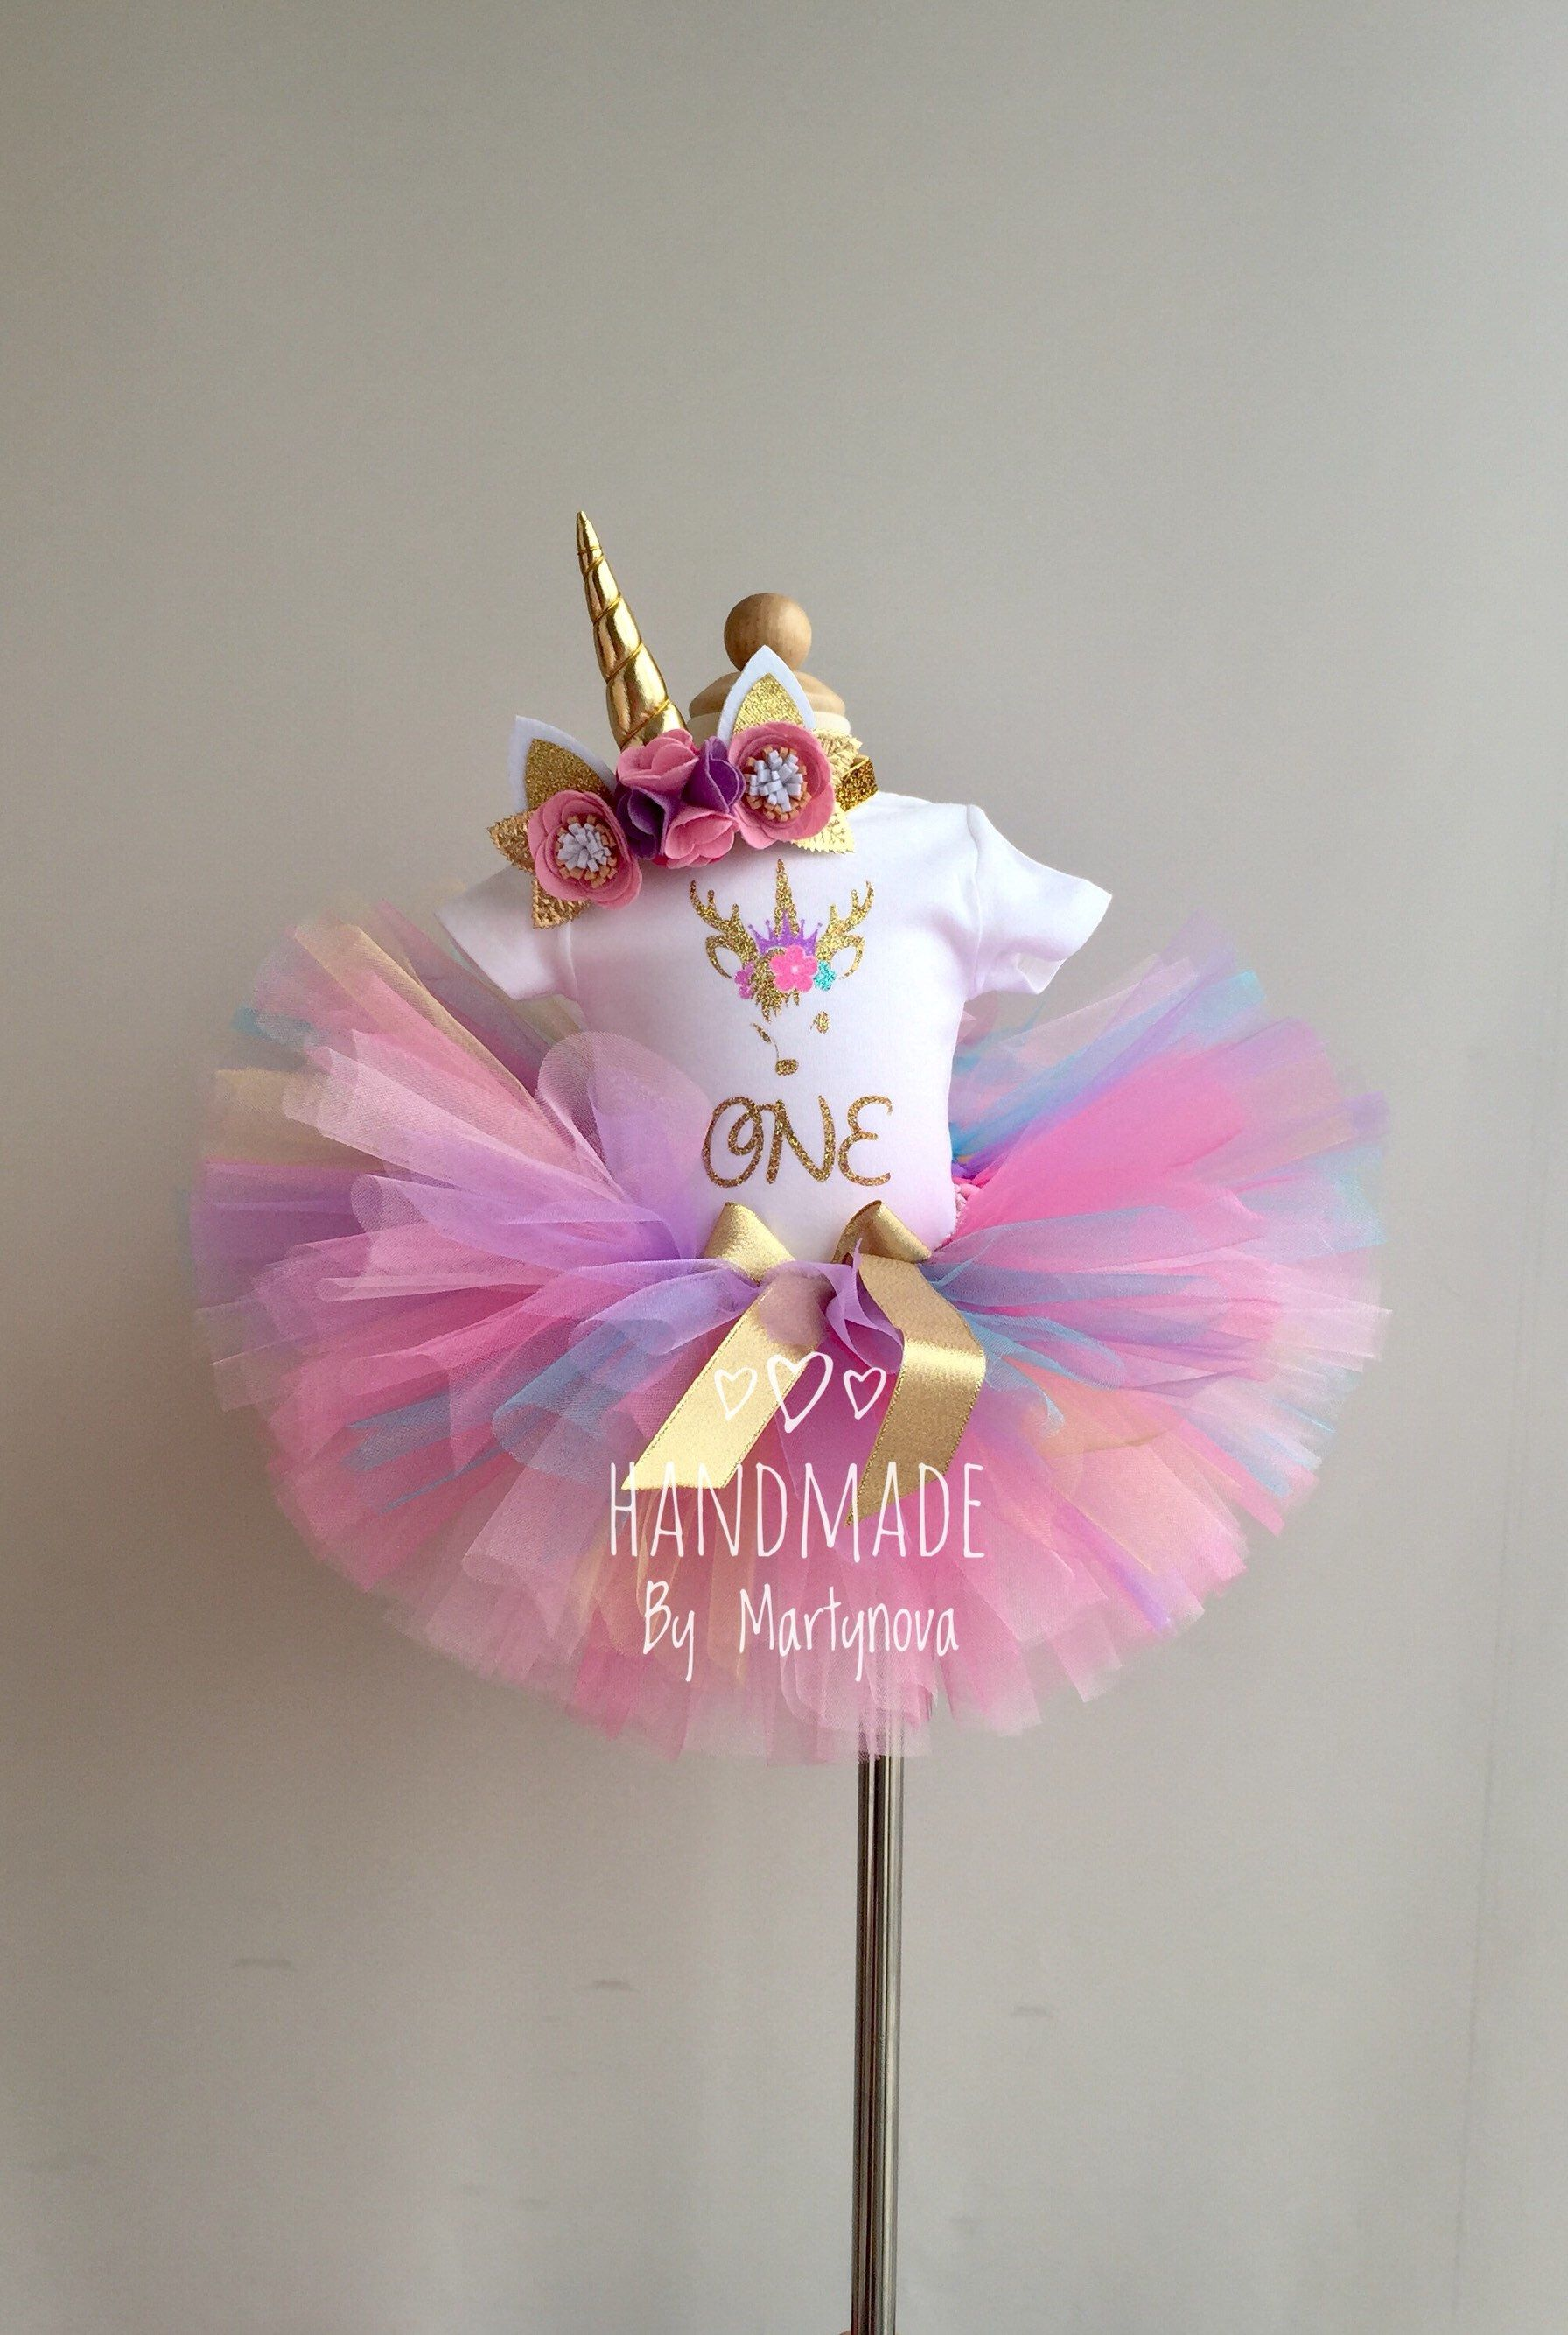 1st Birthday Outfit  Colored Tutu  Pink Tutu  Gold unicorn Horn  Unicorn birthday outfit  Smash cake outfit  Unicorn Headband  Flowers - Unicorn birthday outfit, 1st birthday outfits, Cake smash outfit, Unicorn headband, Birthday outfit, Unicorn birthday - 10% OFFER from $ 50  Code OFFER10 Dear Customers! ATTENTION PLEASE!!!  Before arranging the order please get acquainted with this 1  Please, specify the age of the child  2  If you choose the express delivery, then specify your contact phone number in a conversation or a note to seller at the checkout, without it, I will not be able to ship you a package  3  Processing time  After the placement of your order, I would need 35 BUSINESS days to make it, then it will be shipped  All parcels with standard delivery go by state mail of Turkey and respectively you receive them from state mail of the country  I' m shipping from Turkey to the address you provide to Etsy  Please fill out correctly  All orders are shipped by registered mail and you will be informed about the tracking number  Delivery time to Europe approximately 2 weeks by standard shipping Delivery time to USA approximately 23 weeks by standard shipping (rarely 4045 days in heavy Christmas season) It is not guaranty to get the orders on time for Christmas since the scarves ships from Turkey  The standard delivery takes 1530 days from Turkey to US in average due to postal servicecustoms workload  Rarely it takes 4045 days due to heavy Christmas traffic   The EXPRESS shipping takes 47 business days to US  If you have different questions, please contact me by Etsy Convo  Thank you very much!